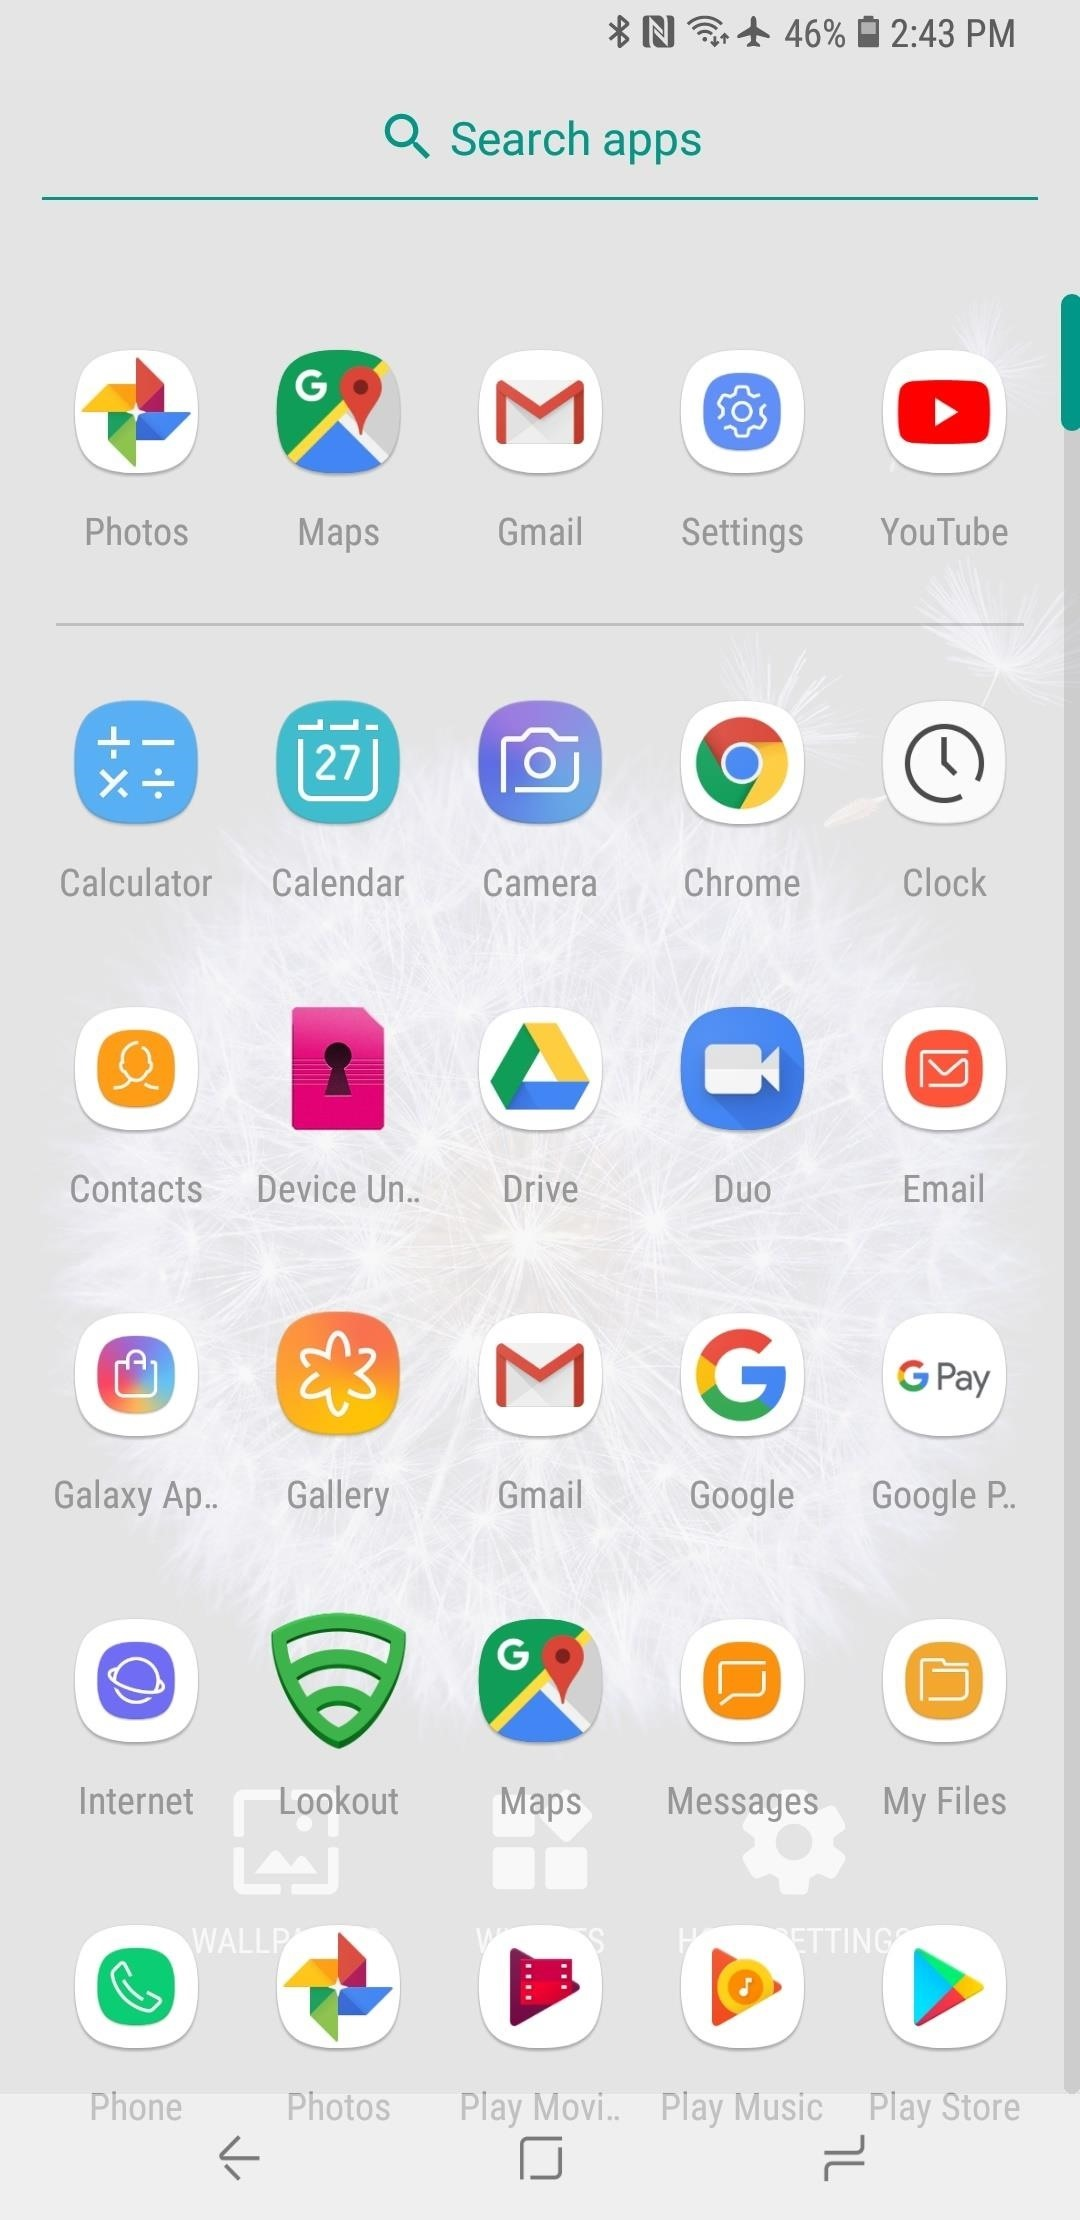 How to Get the New Pixel Launcher from Android P on Any Phone — No Root Needed